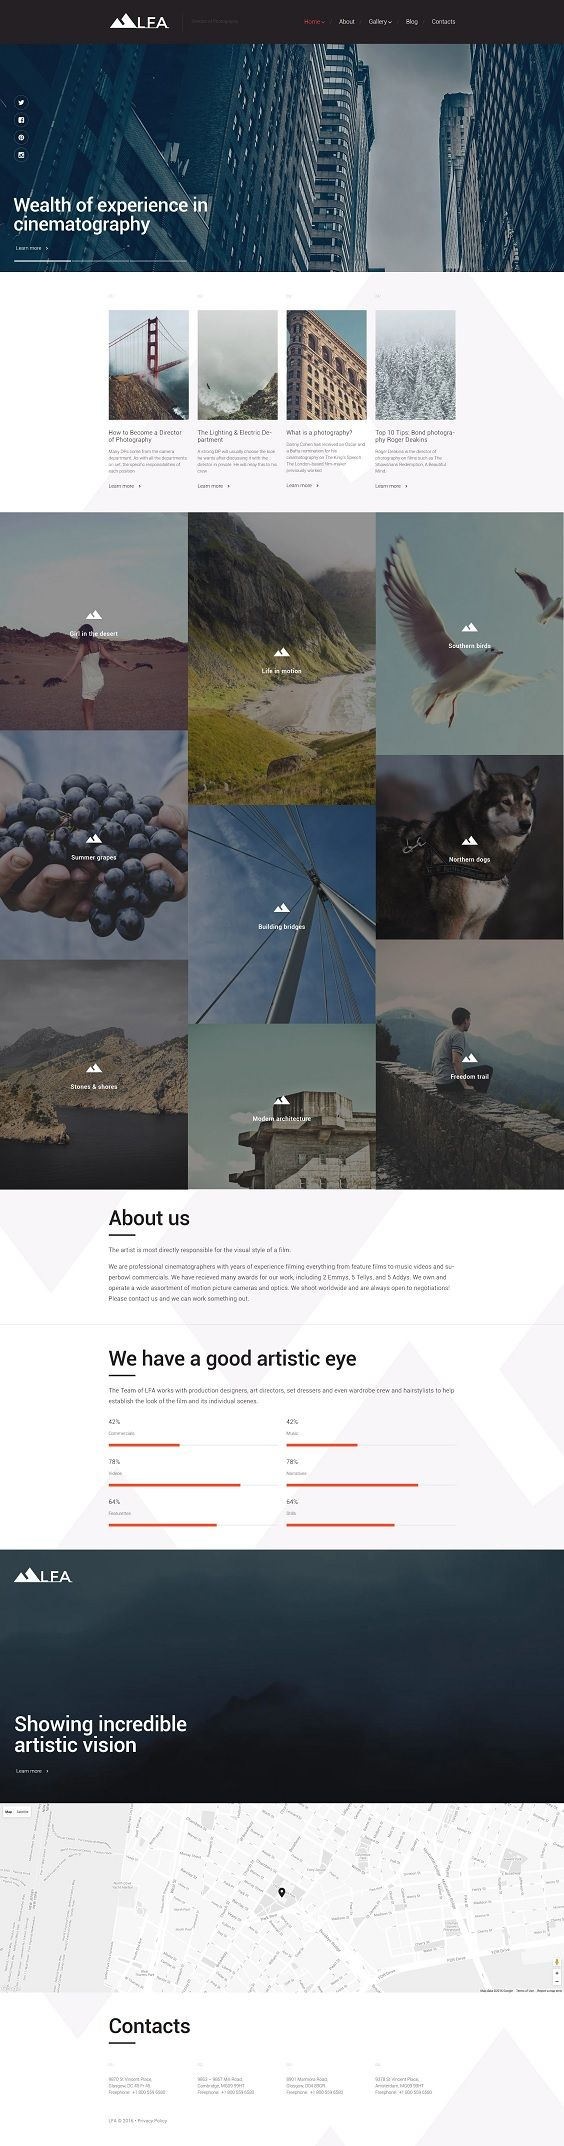 This responsive photo WordPress theme is a content-focused solution for your creative portfolio. It utilizes large, retina-ready imagery in a masonry gallery and page-wide slider. The latter is also supplied with social media icons on the left, which can motivate customers to subscribe to your social accounts. Most of the content is presented in the background of polygons, adding a touch of flair to the layout. Progress bars are used to show your stats in the percentage ratio, whereas Font…